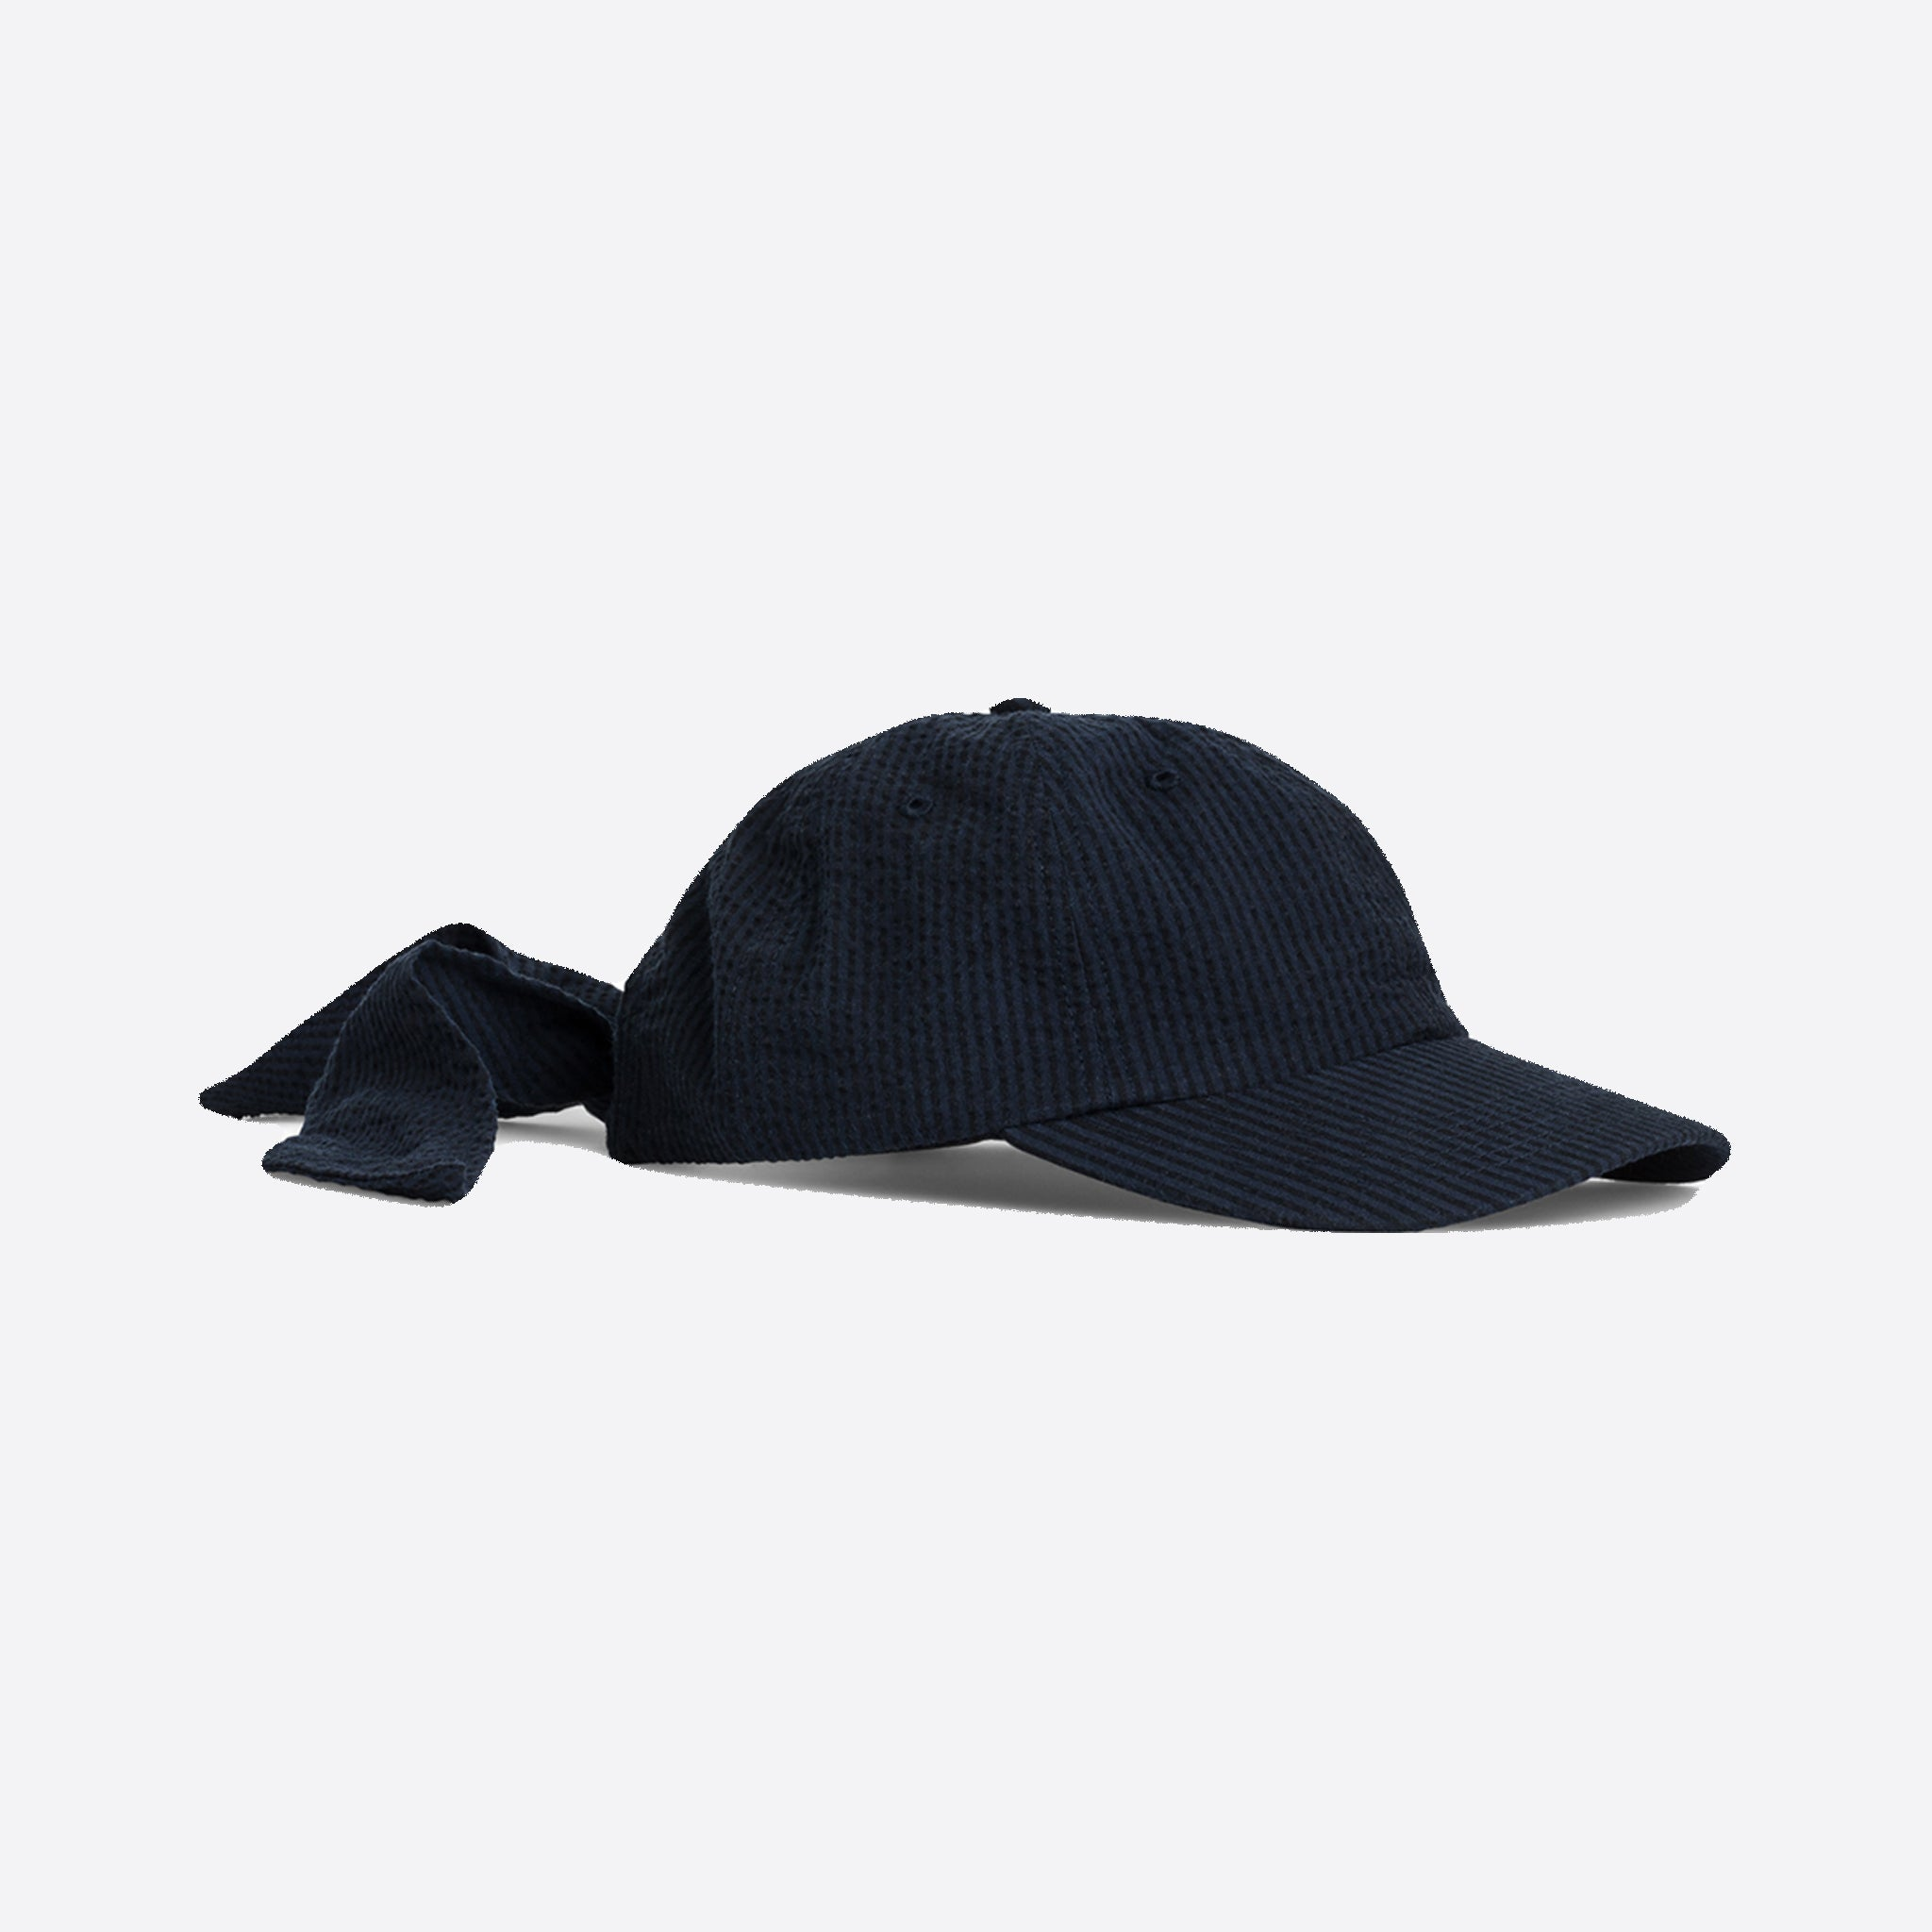 Norse Projects Seersucker Sports Cap in Dark Navy — Our Daily Edit 7712a9d2187